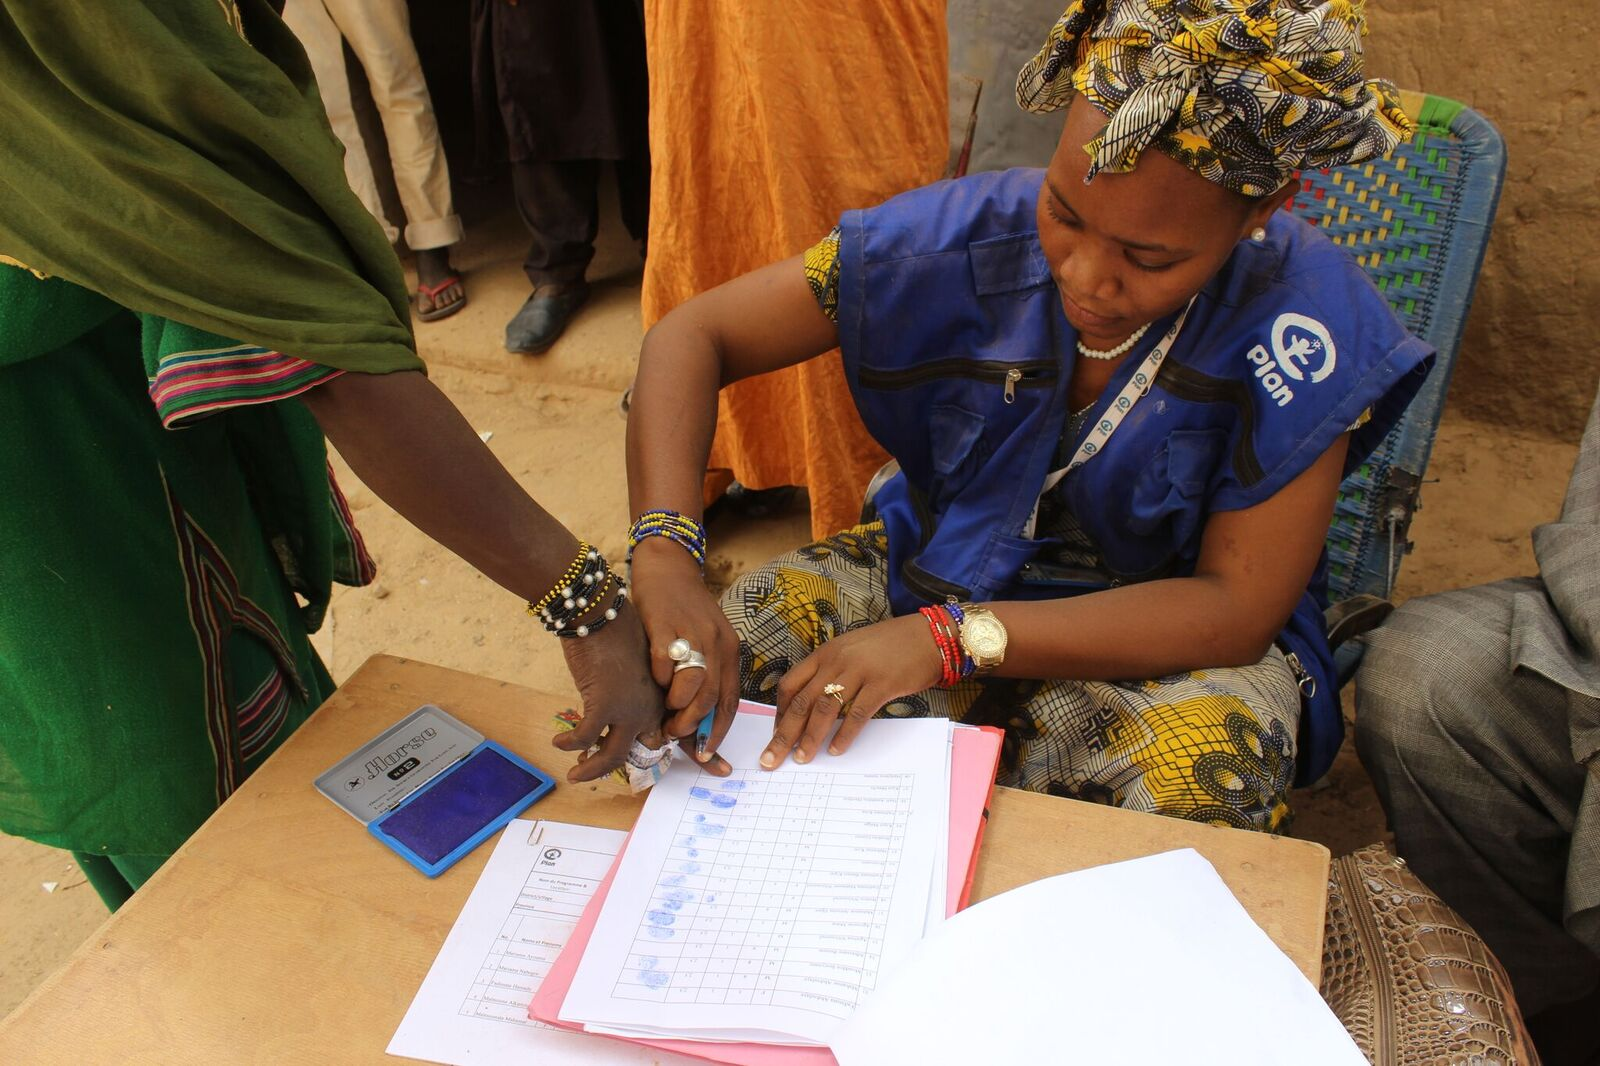 Plan International, Mali. Fingerprinting the list before receiving food assistance